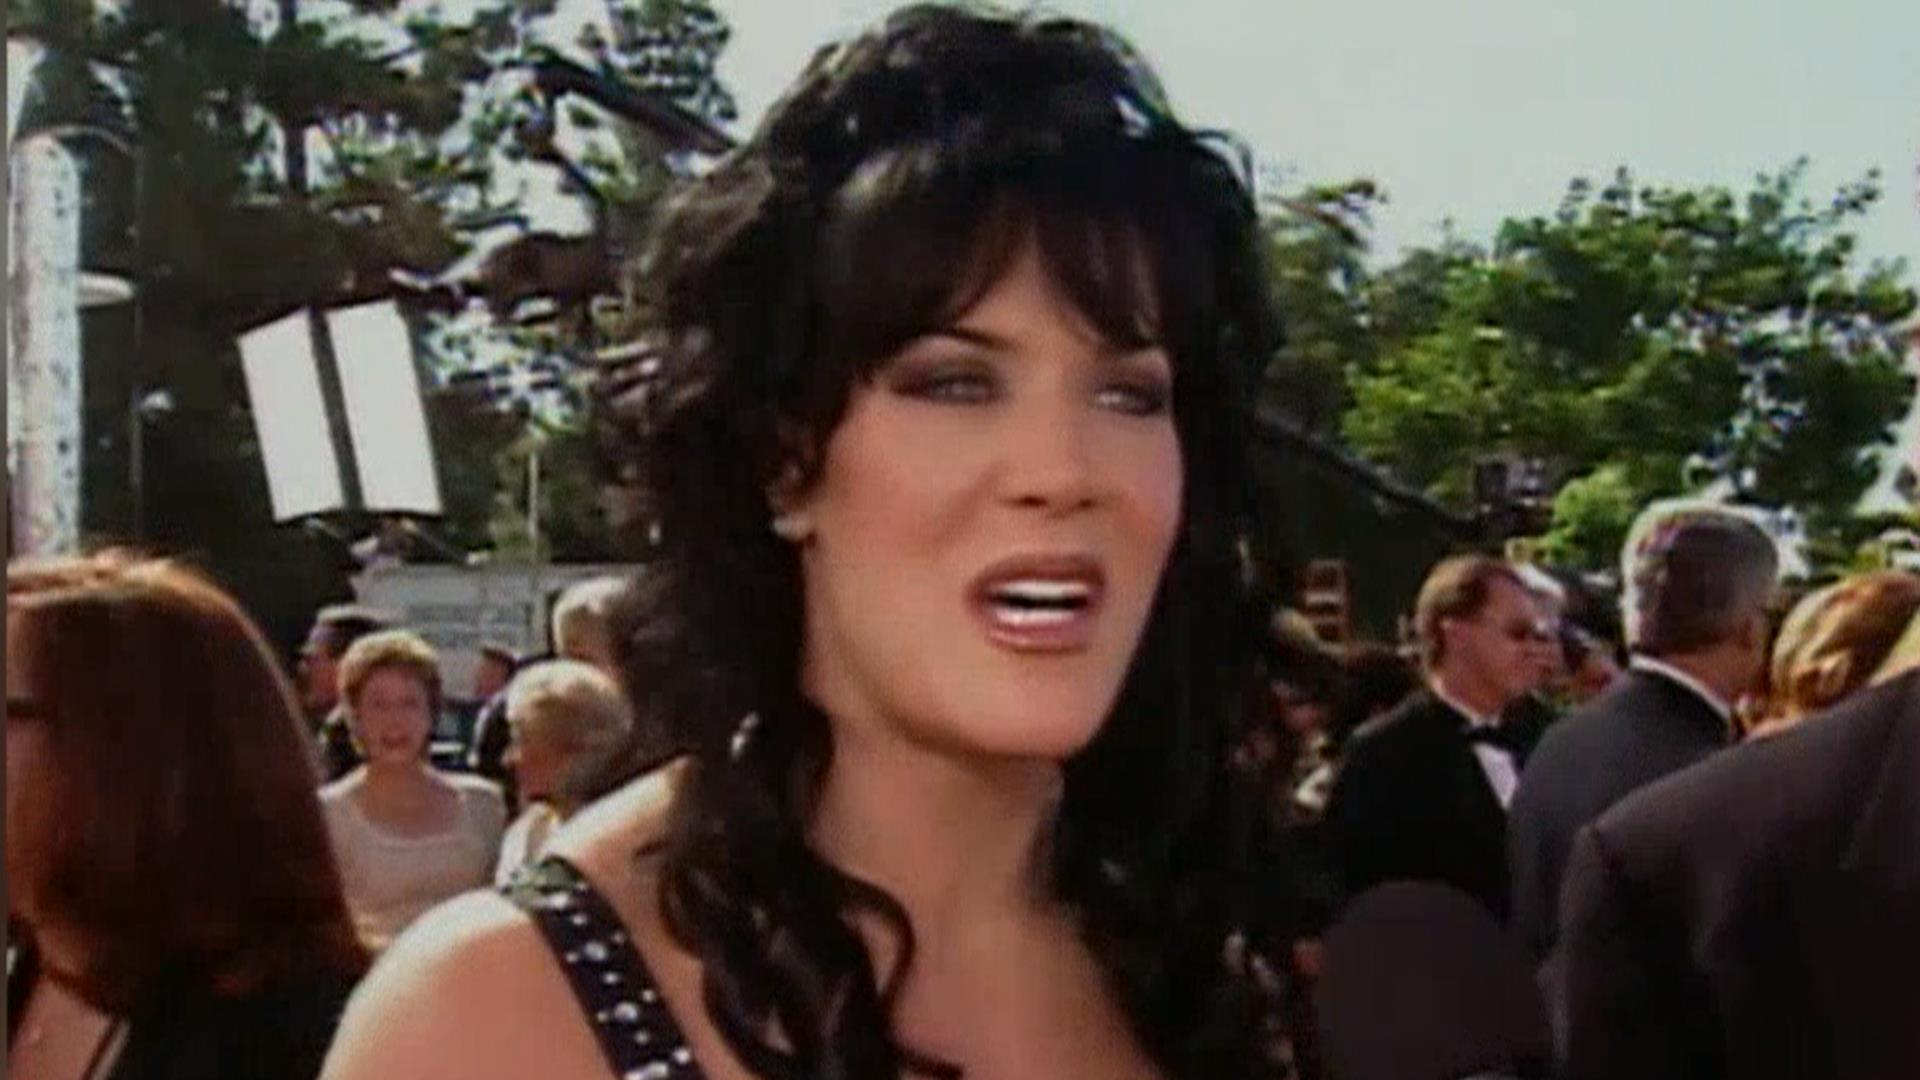 wrestler chyna found dead at 46  police are investigating